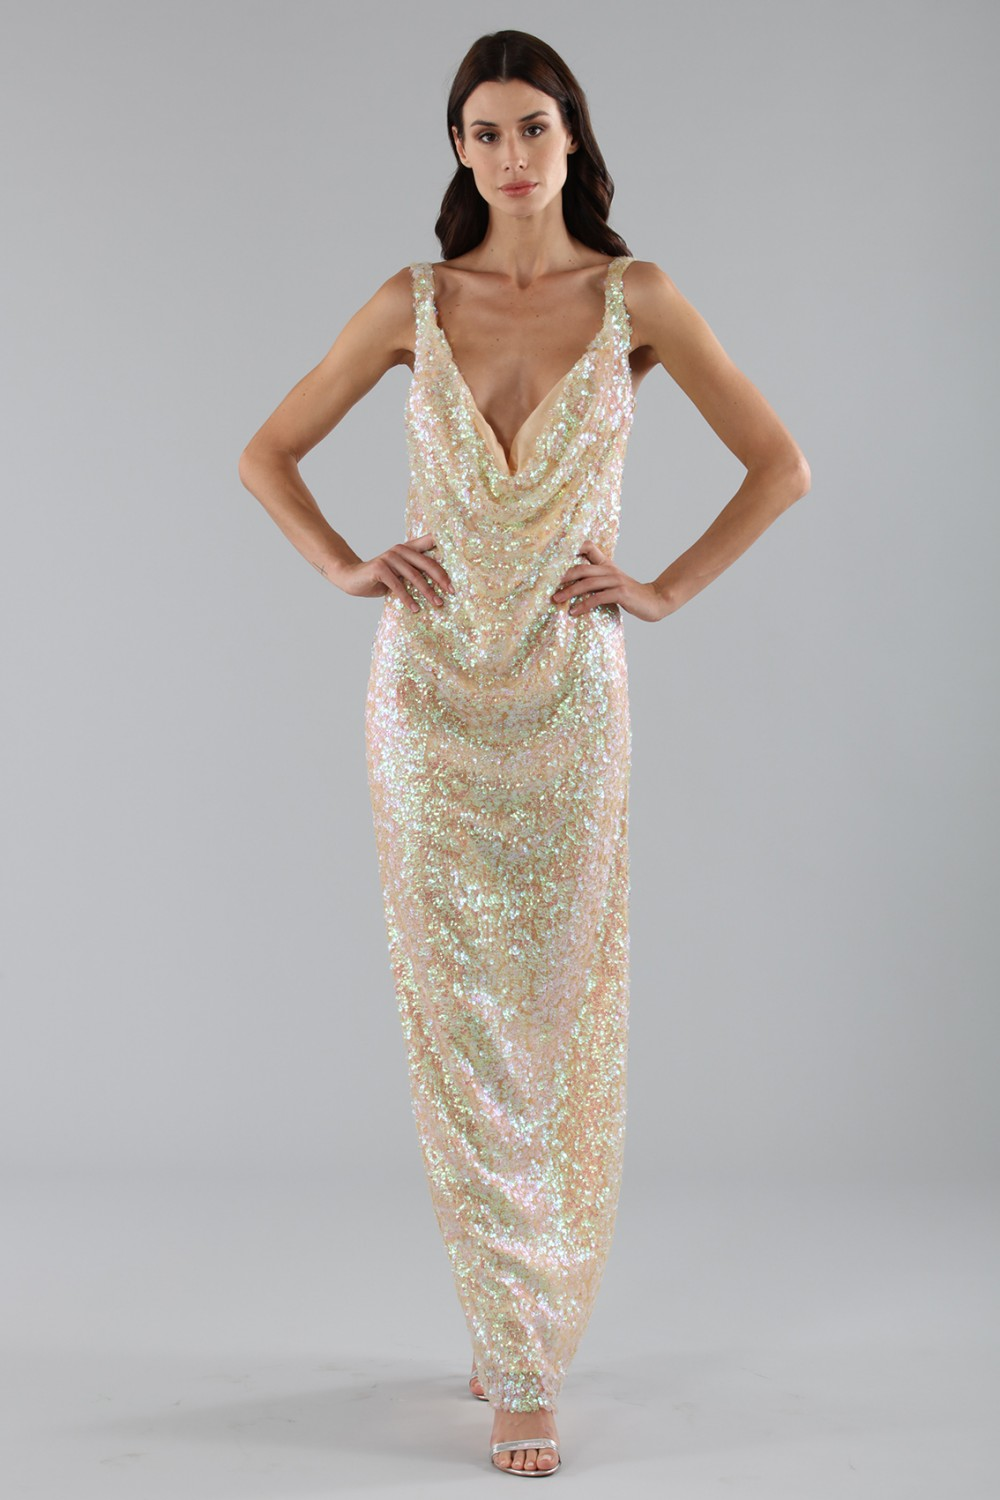 Dress in silver and gold sequins